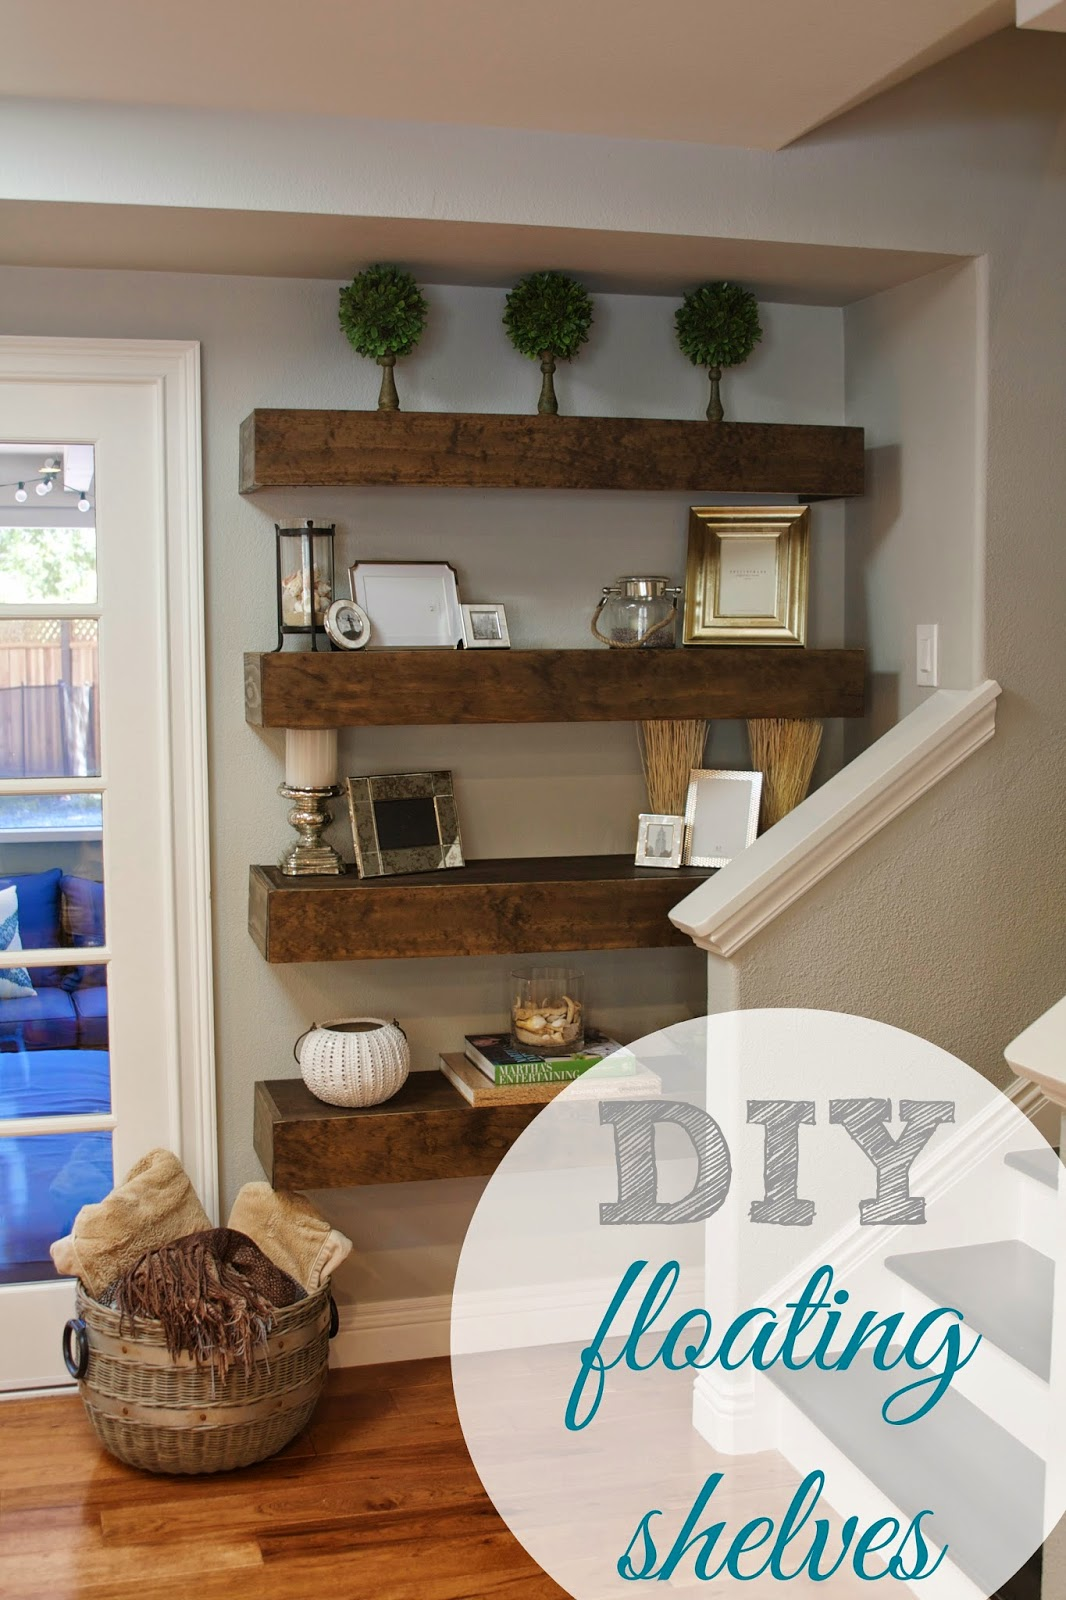 Simple Diy Floating Shelves Tutorial Decor Ideas Simply Organized Bloglovin